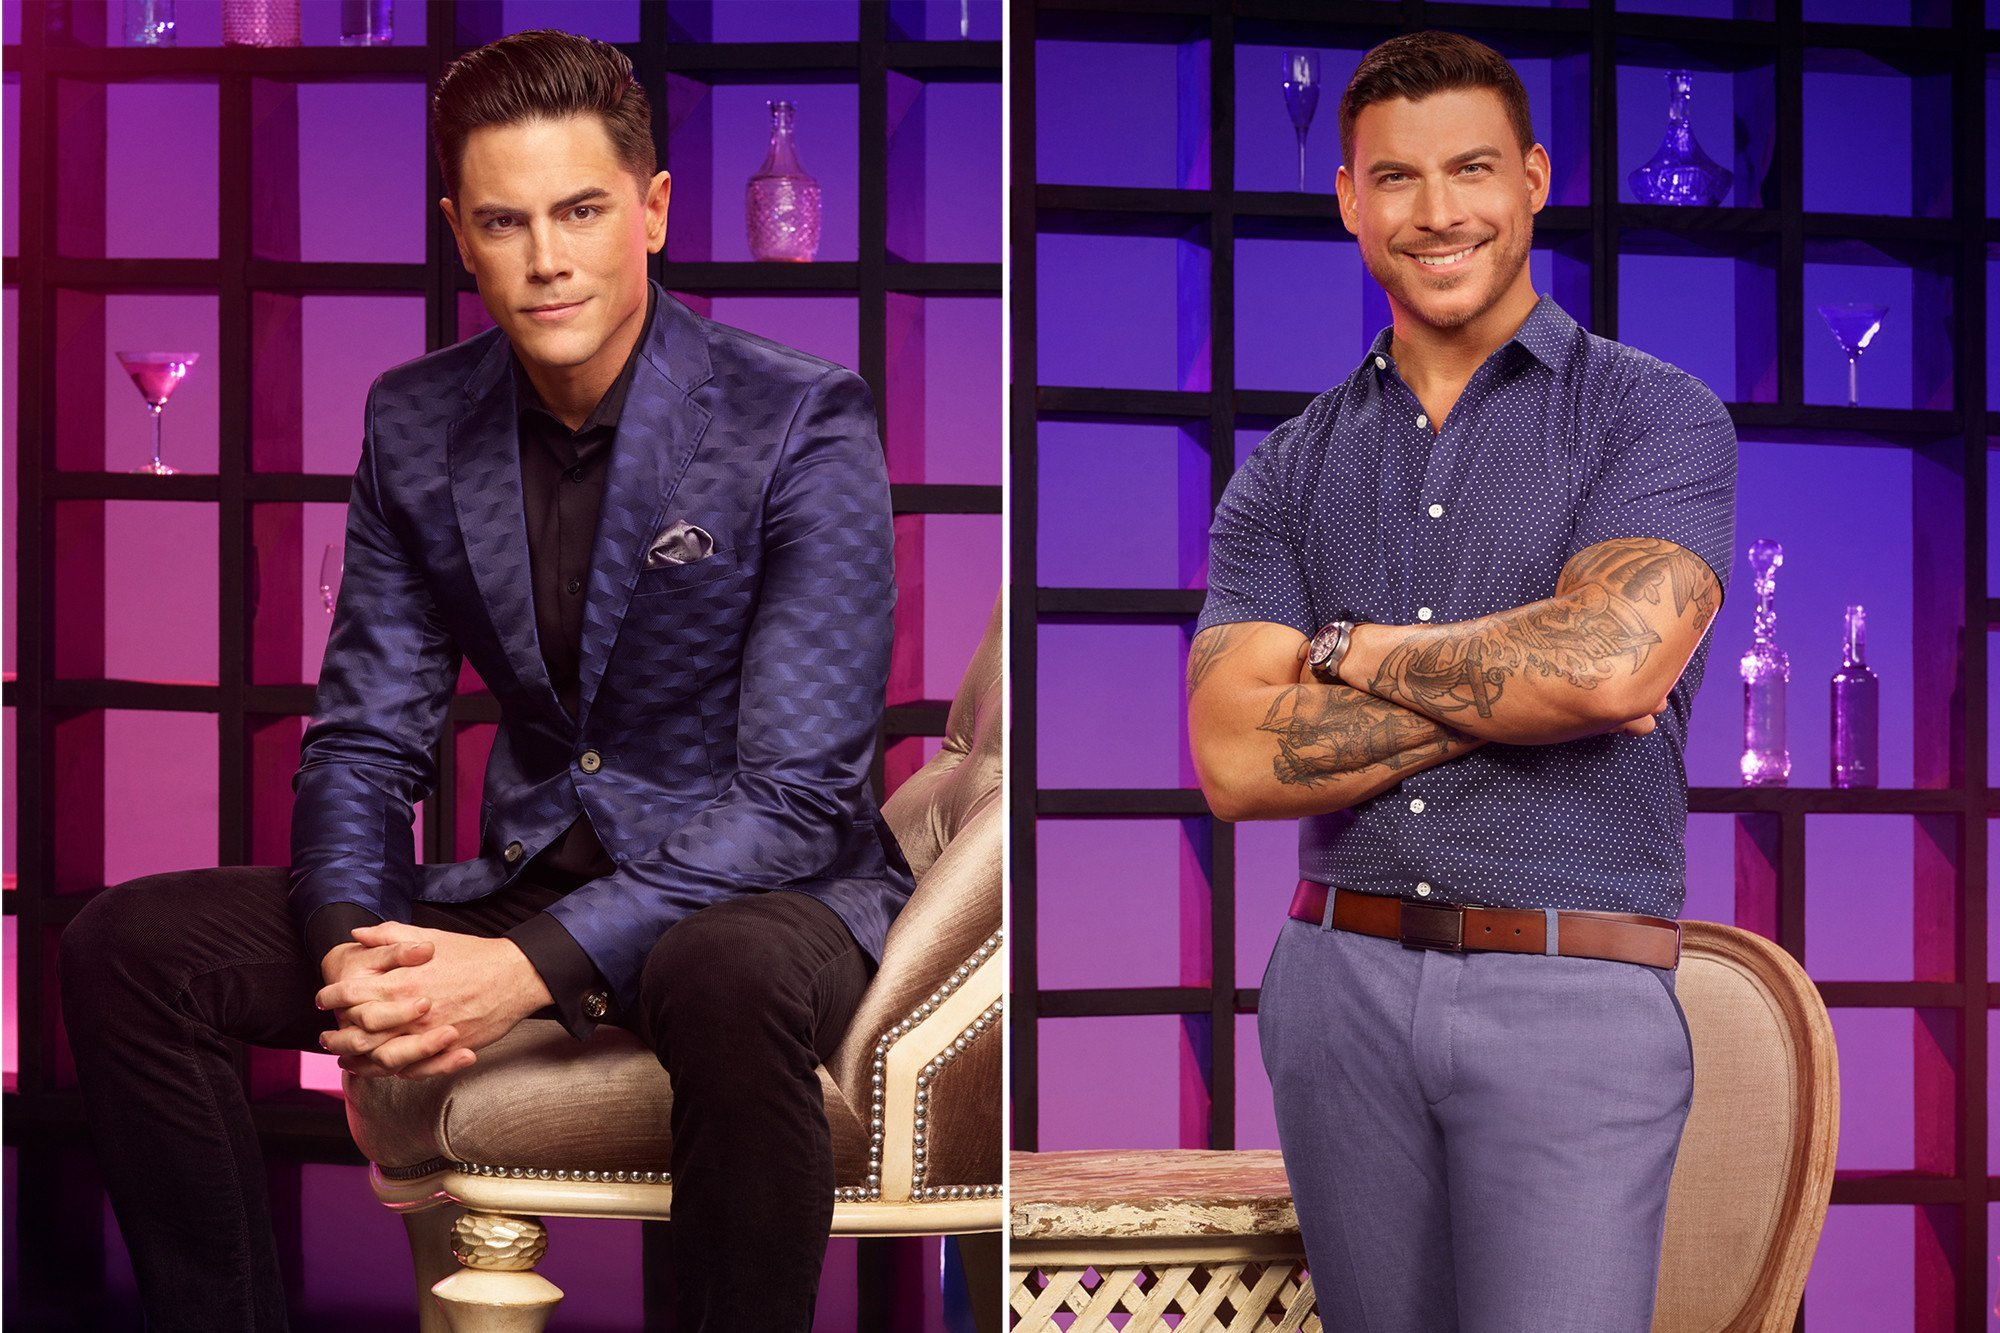 The new Jax is the real deal, says Tom Sandoval